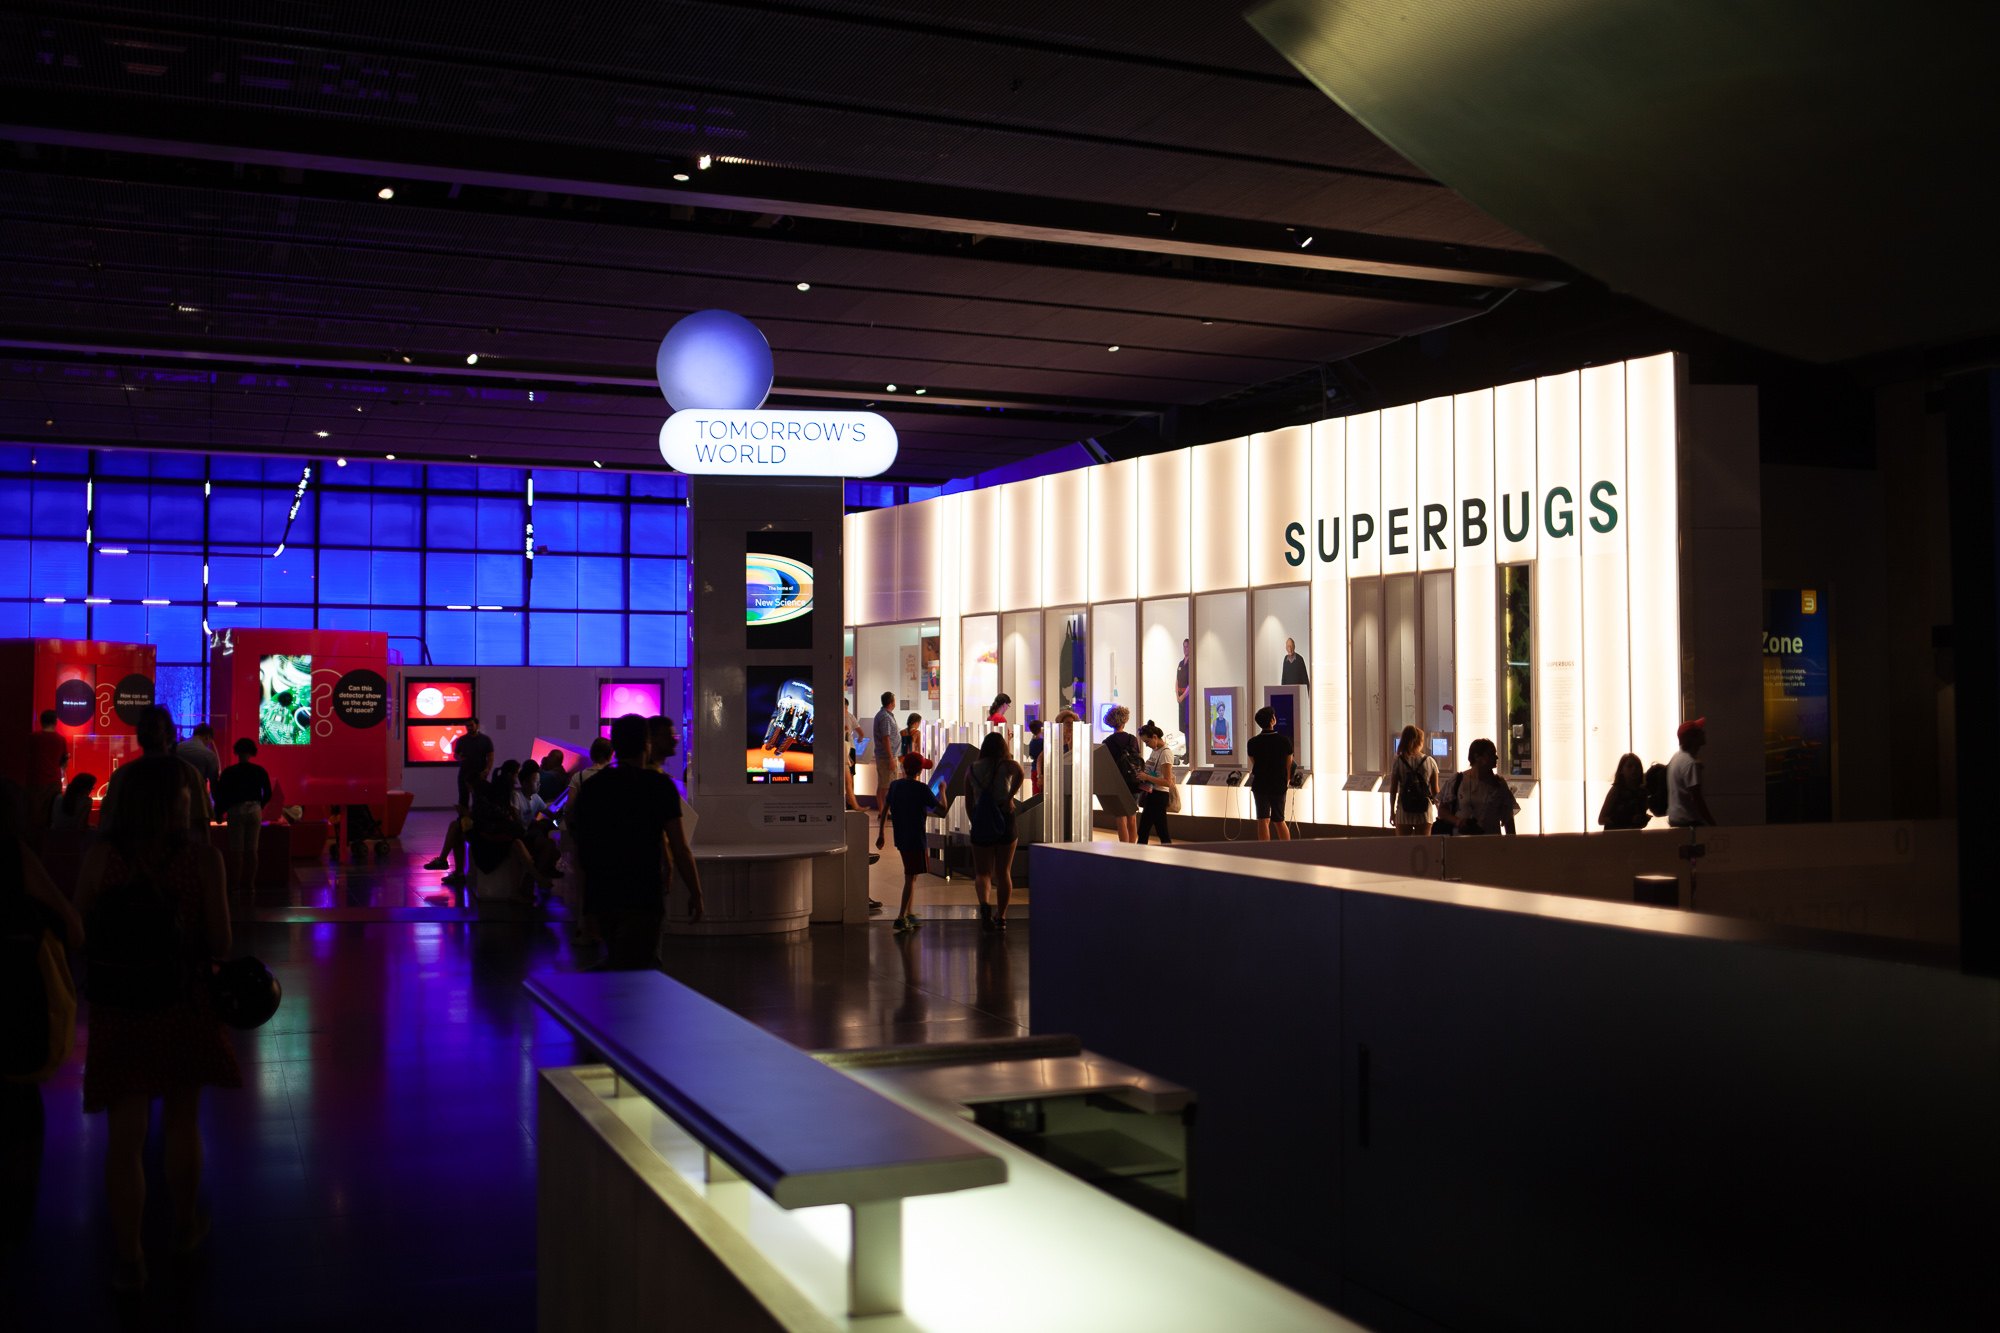 On Monday afternoon we went to the Science Museum to check out the SUPERBUGS exhibition. It was really inspiring to see how simply they communicated the challenges we're facing, as well as checking out some of the design interventions that have been tried and tested before.